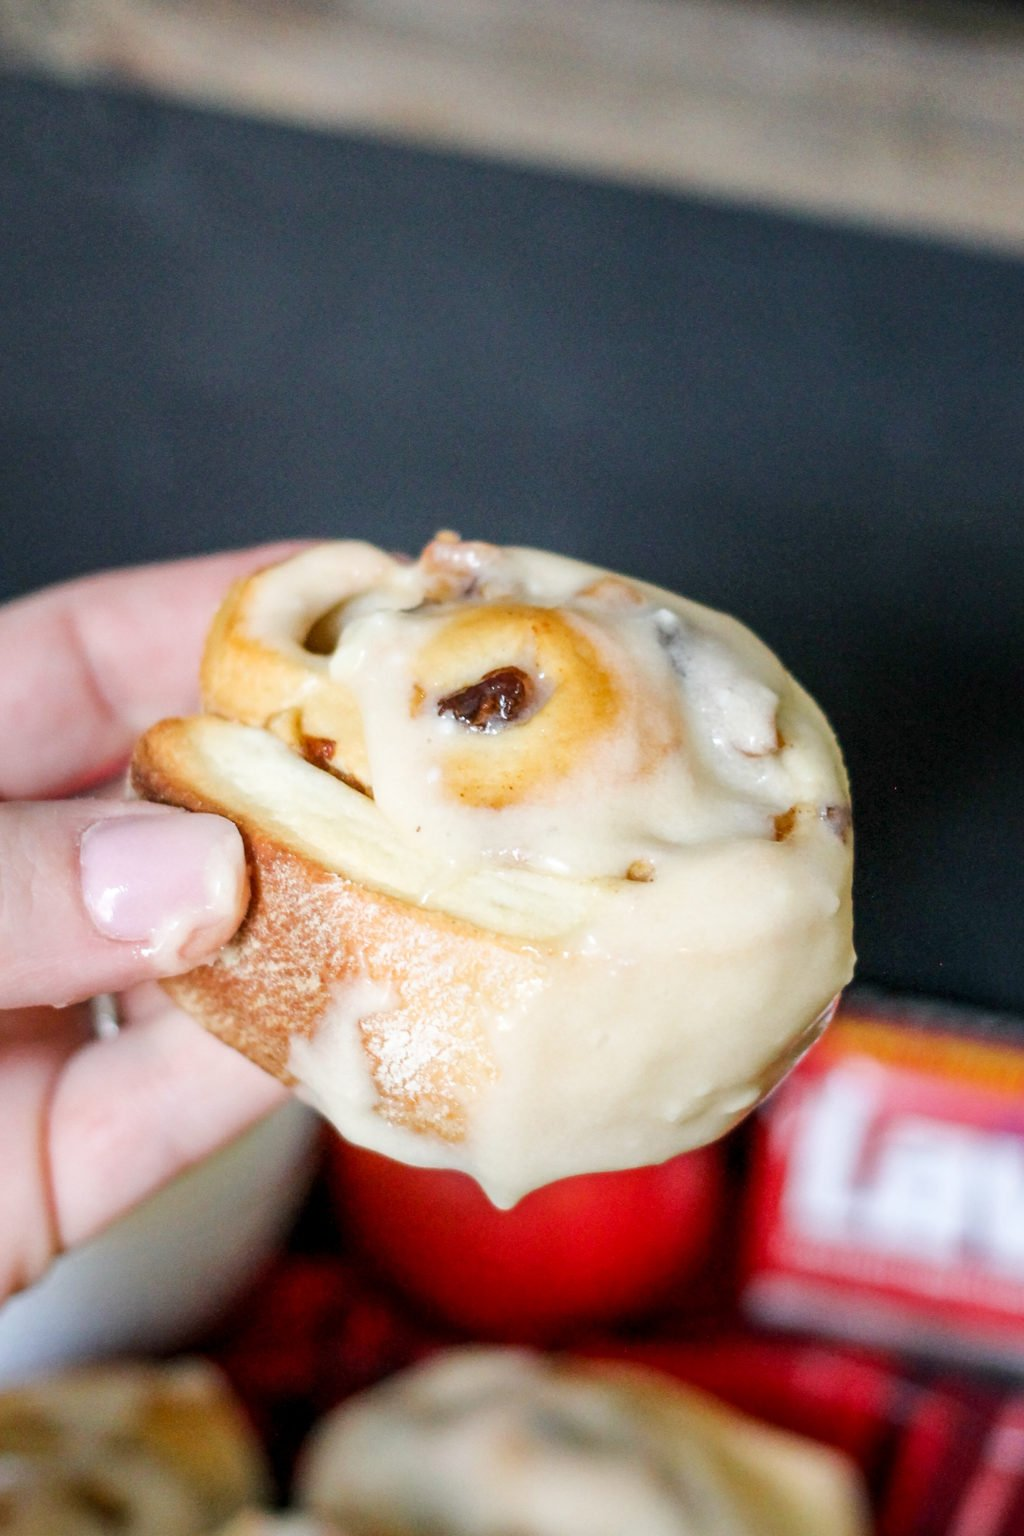 Apple Raisin Cinnamon Rolls are filled with tart apples and sweet raisins, combining the delicious flavors in the perfect breakfast treat.